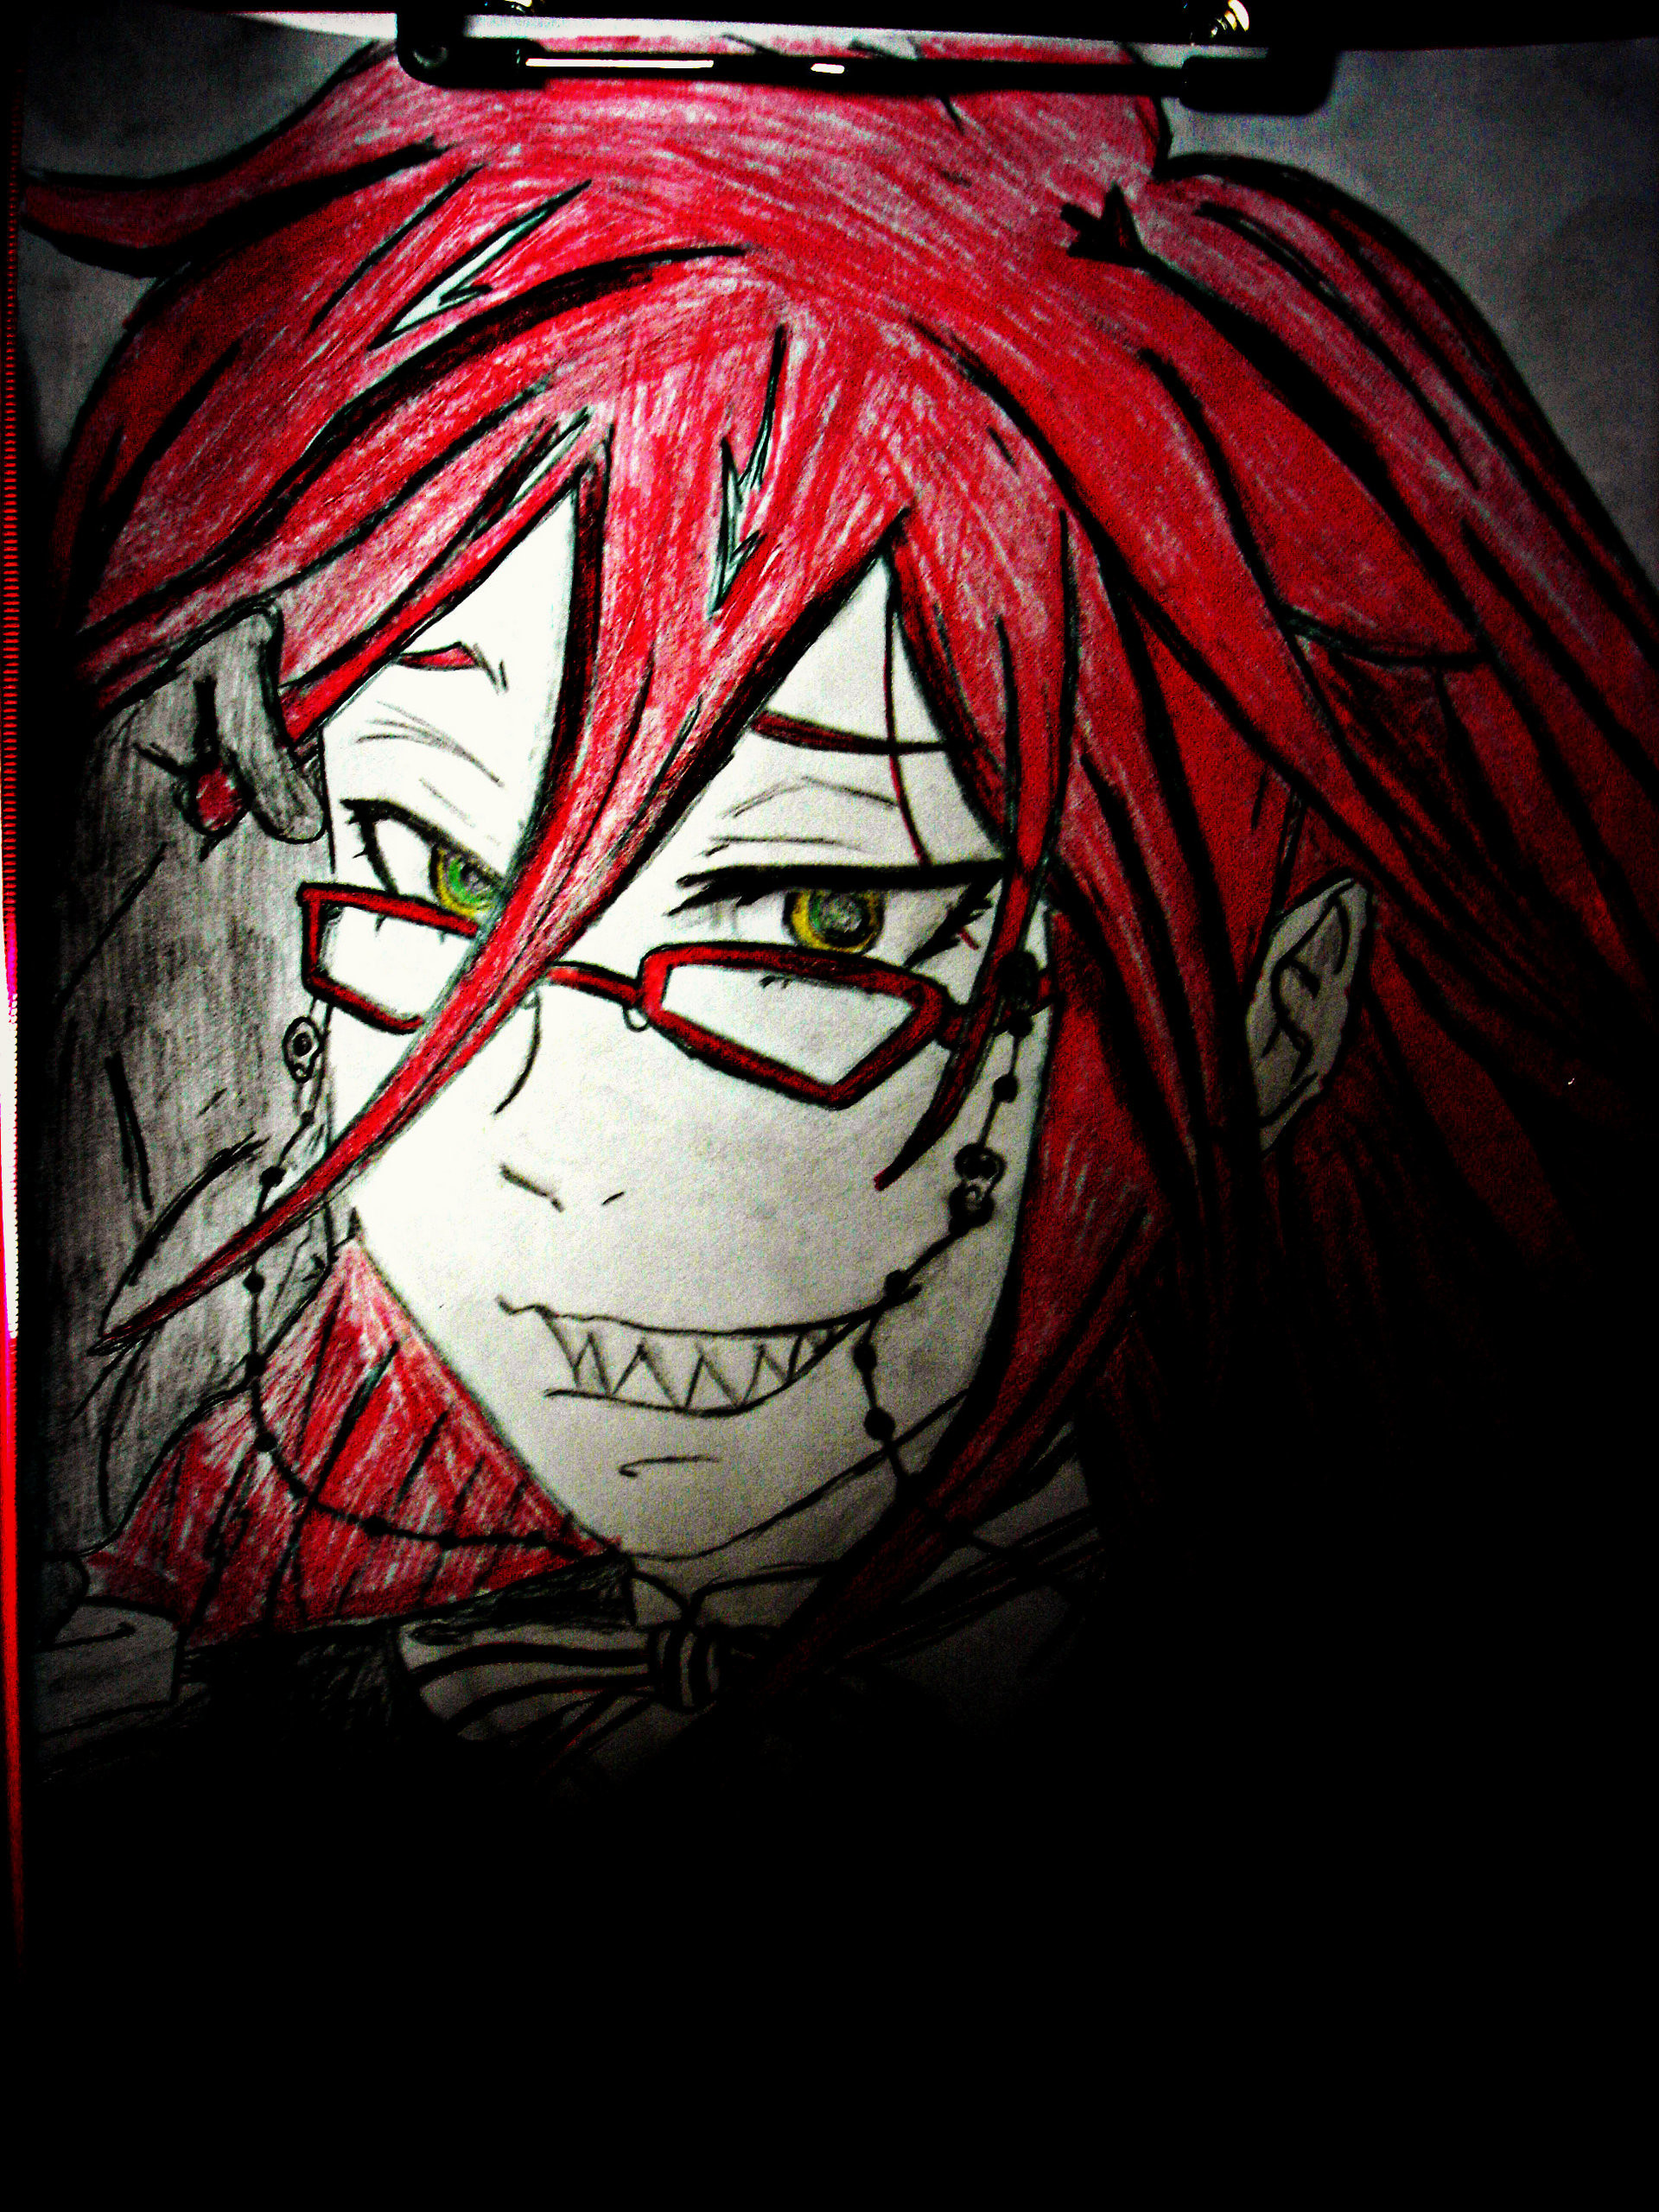 1920x2560 The Kuroshitsuji ( Black Butler ) Shinigami images Grell Sutcliff Fan Art ♥  HD wallpaper and background photos